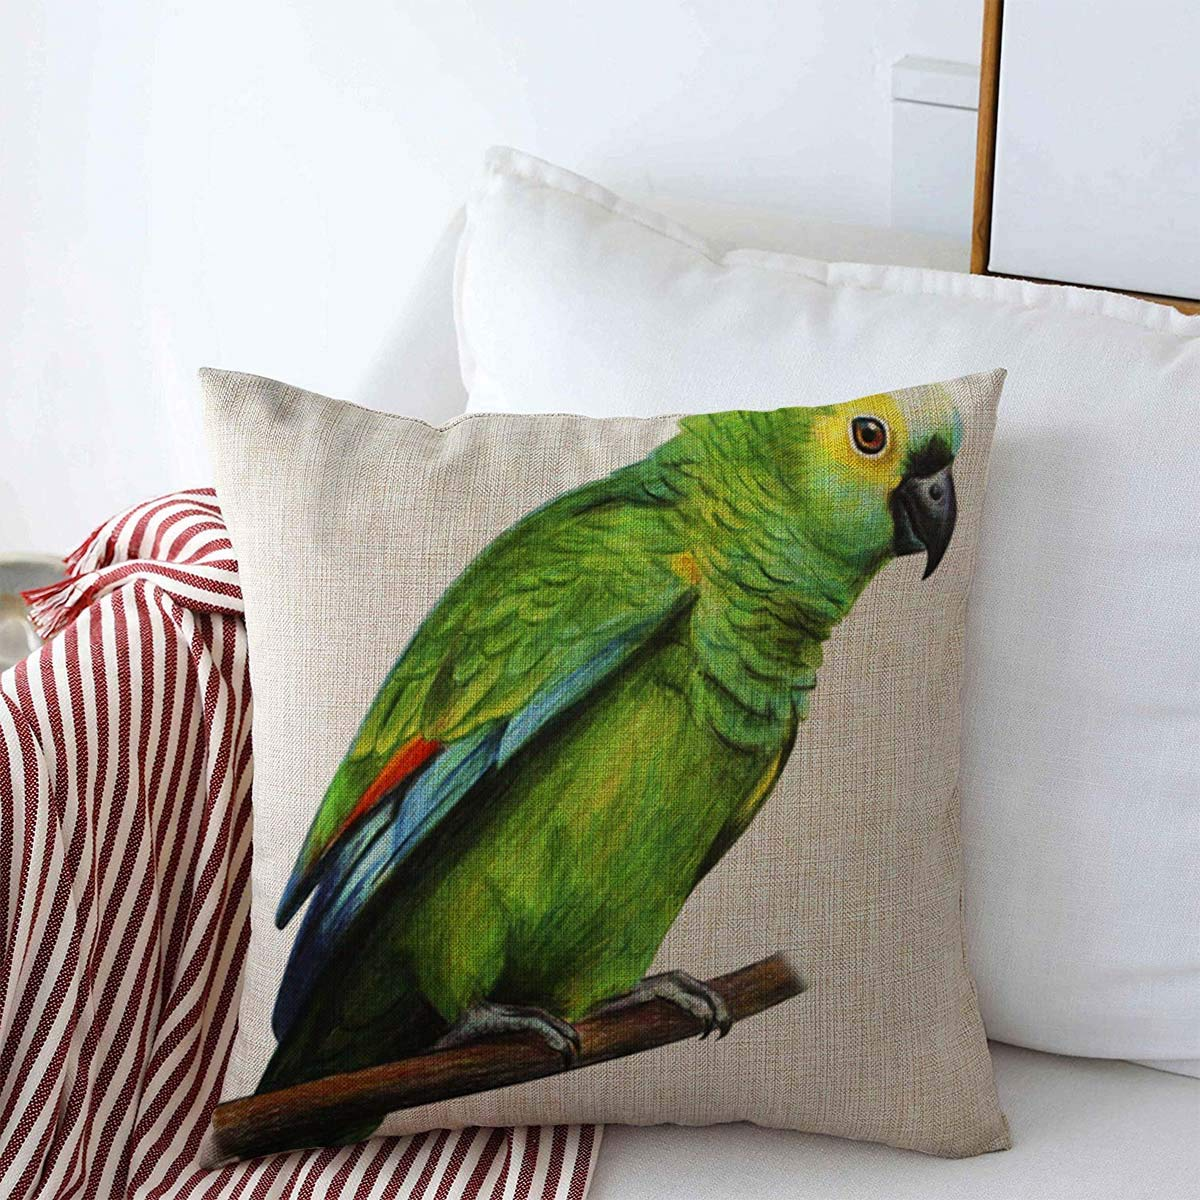 Starojan Throw Pillows Cover 18 x 18 Inches Red Popular Bolivia Green Knows Parrot Drawing Amazona Animals Wildlife Blue Spot Realistic Amazonian Cushion Case Cotton Linen for Fall Home Decor